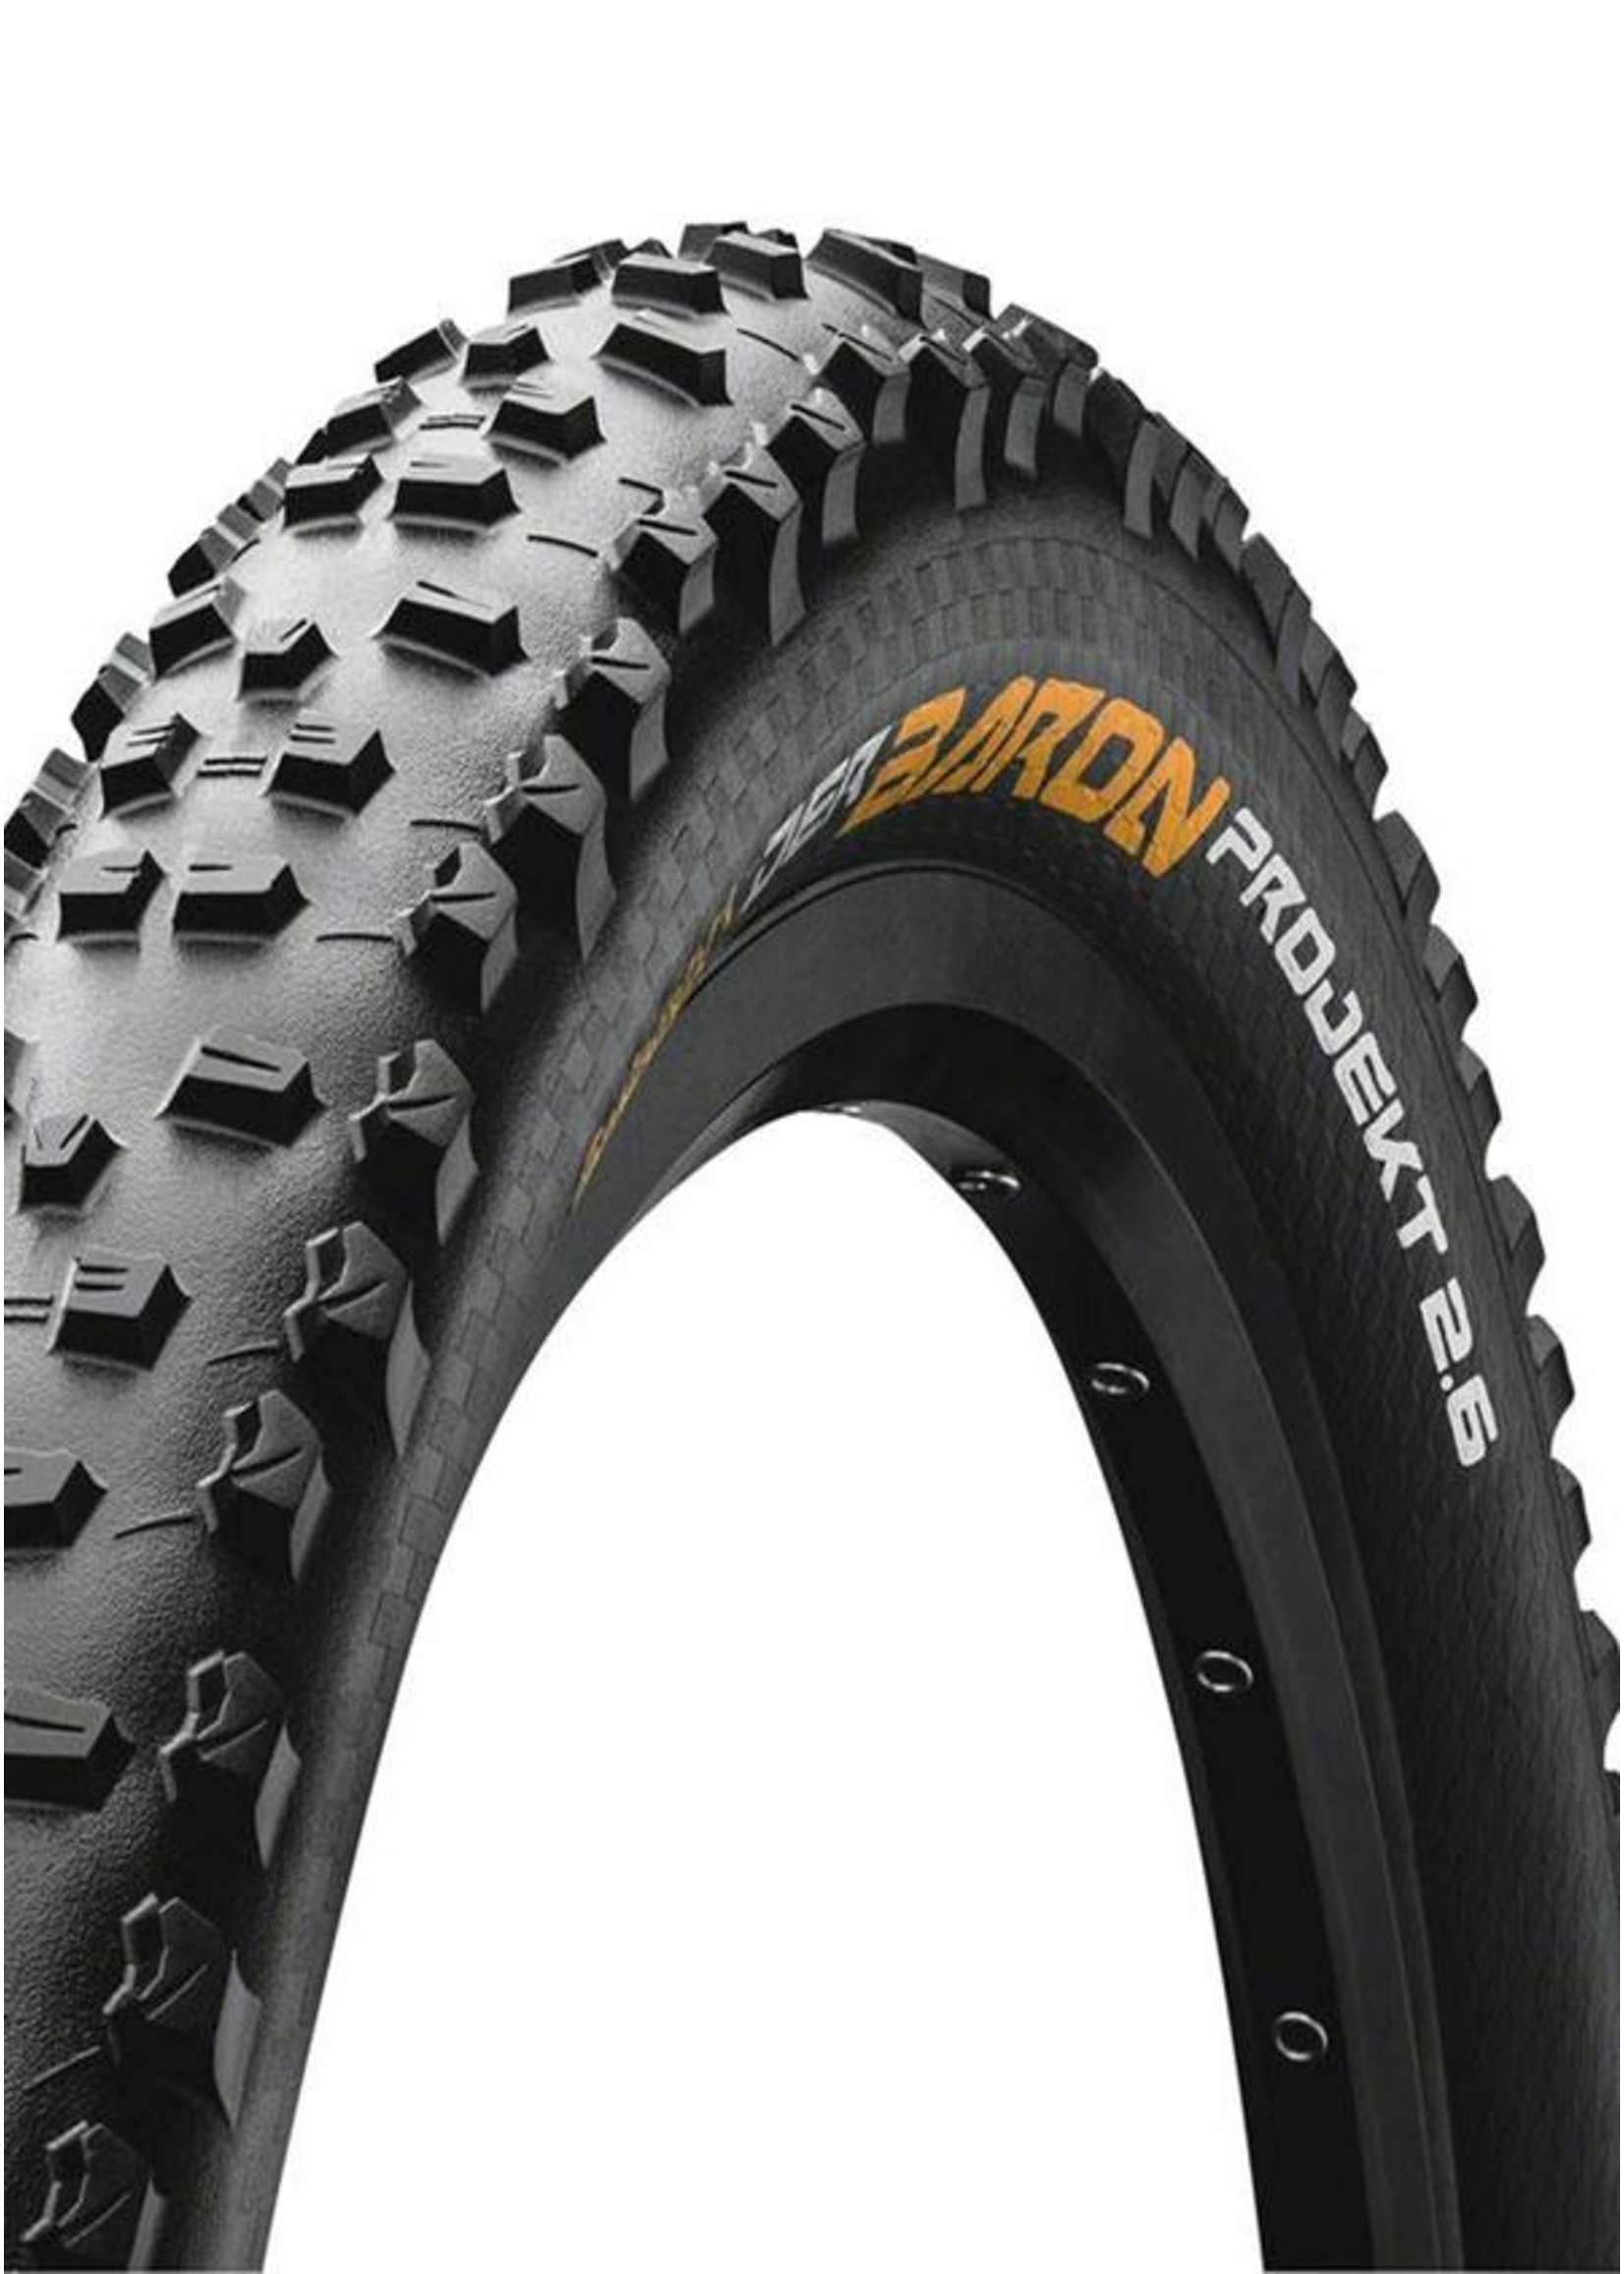 CONTINENTAL Der Baron Projekt 27.5 x 2.6 Folding ProTection APEX + Black Chili